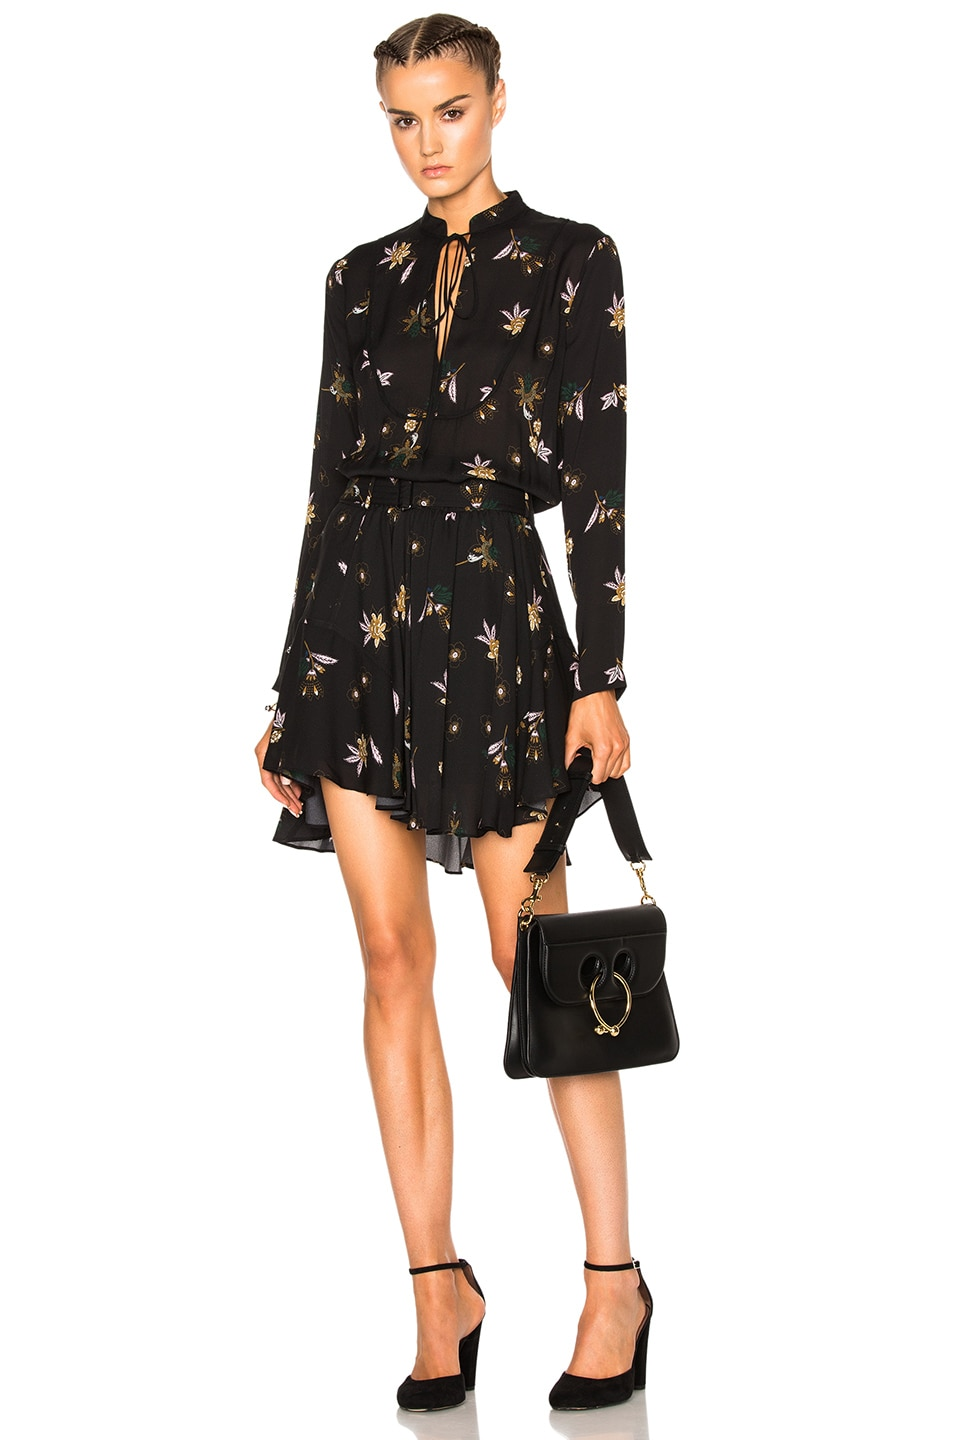 67fddbc81d8cd6 Image 1 of A.L.C. Campbell Dress in Black Multi